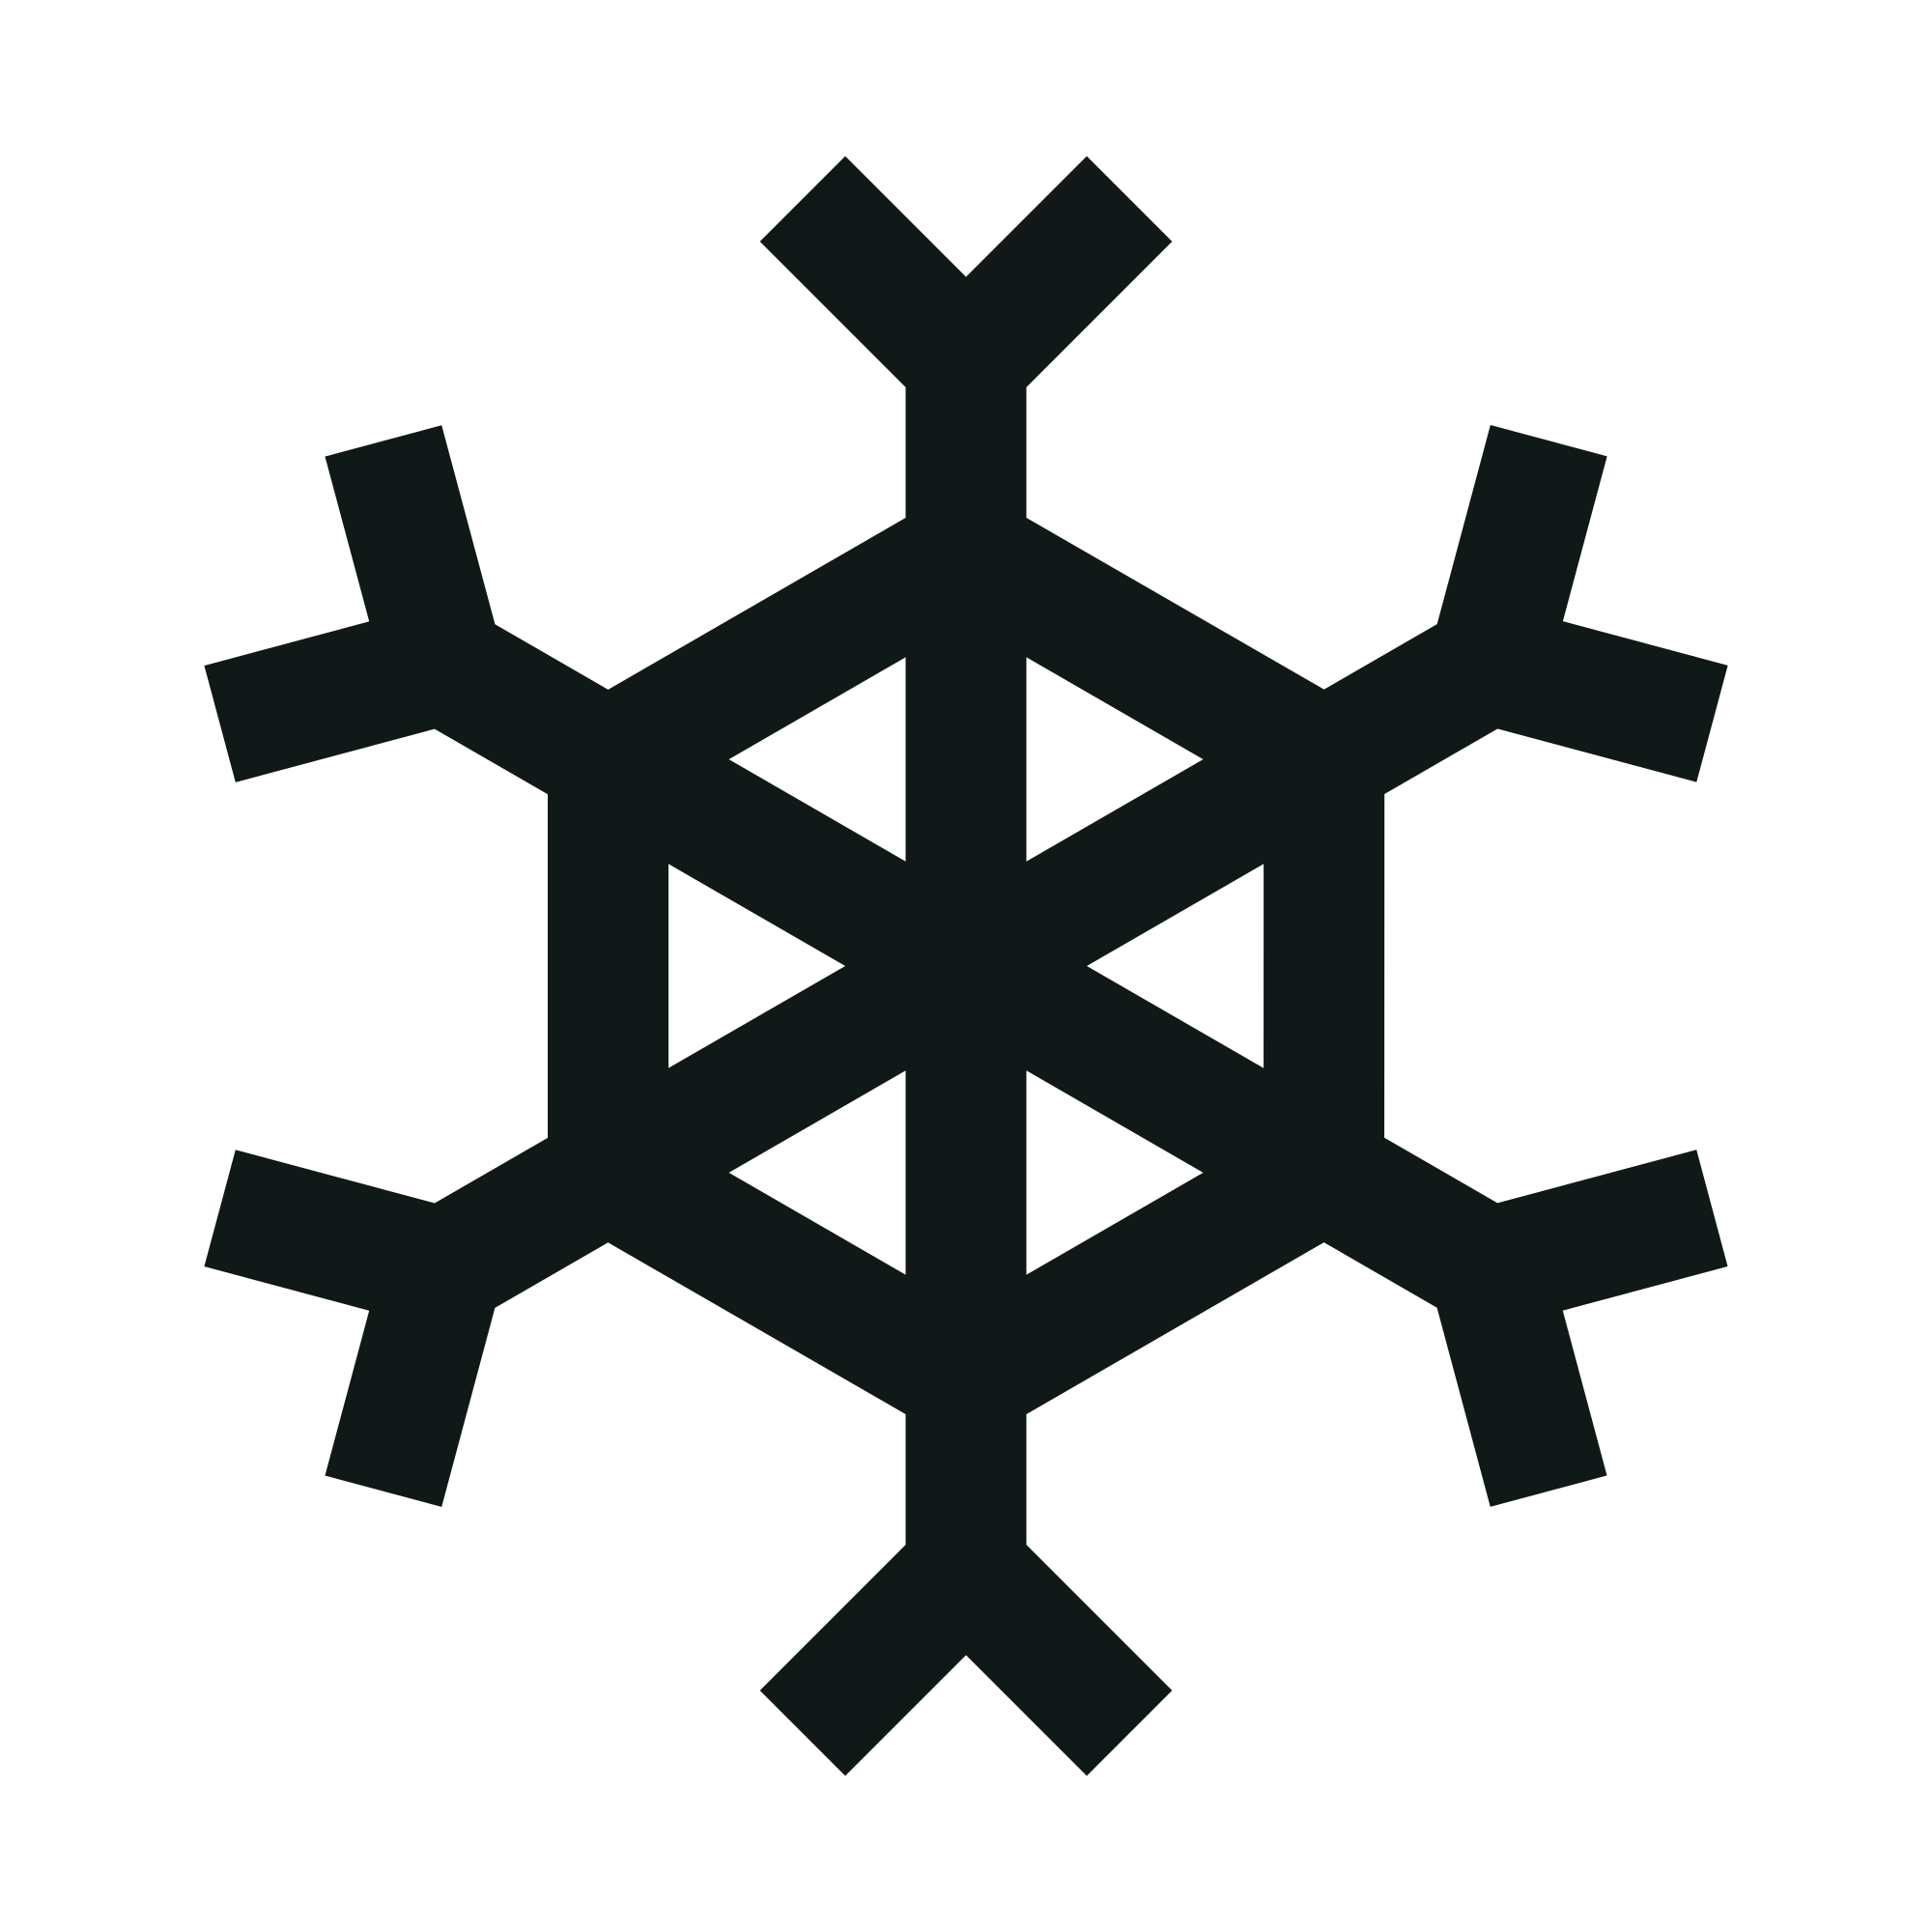 Snow svg. File toicon icon lines